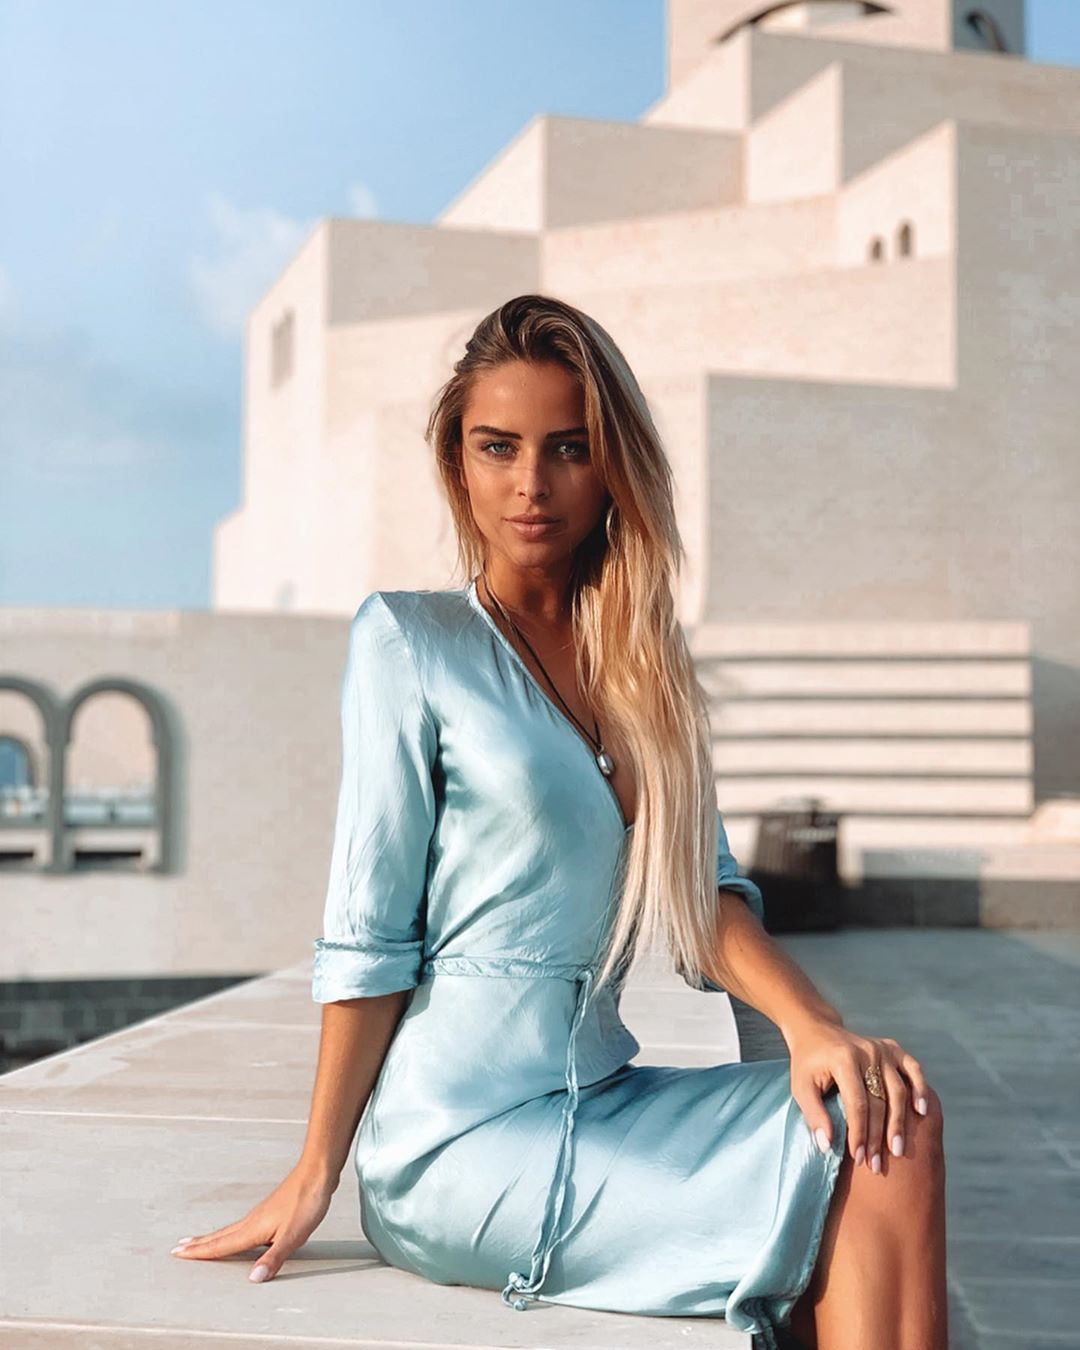 Chiara-Bransi-Wallpapers-Insta-Fit-Bio-10